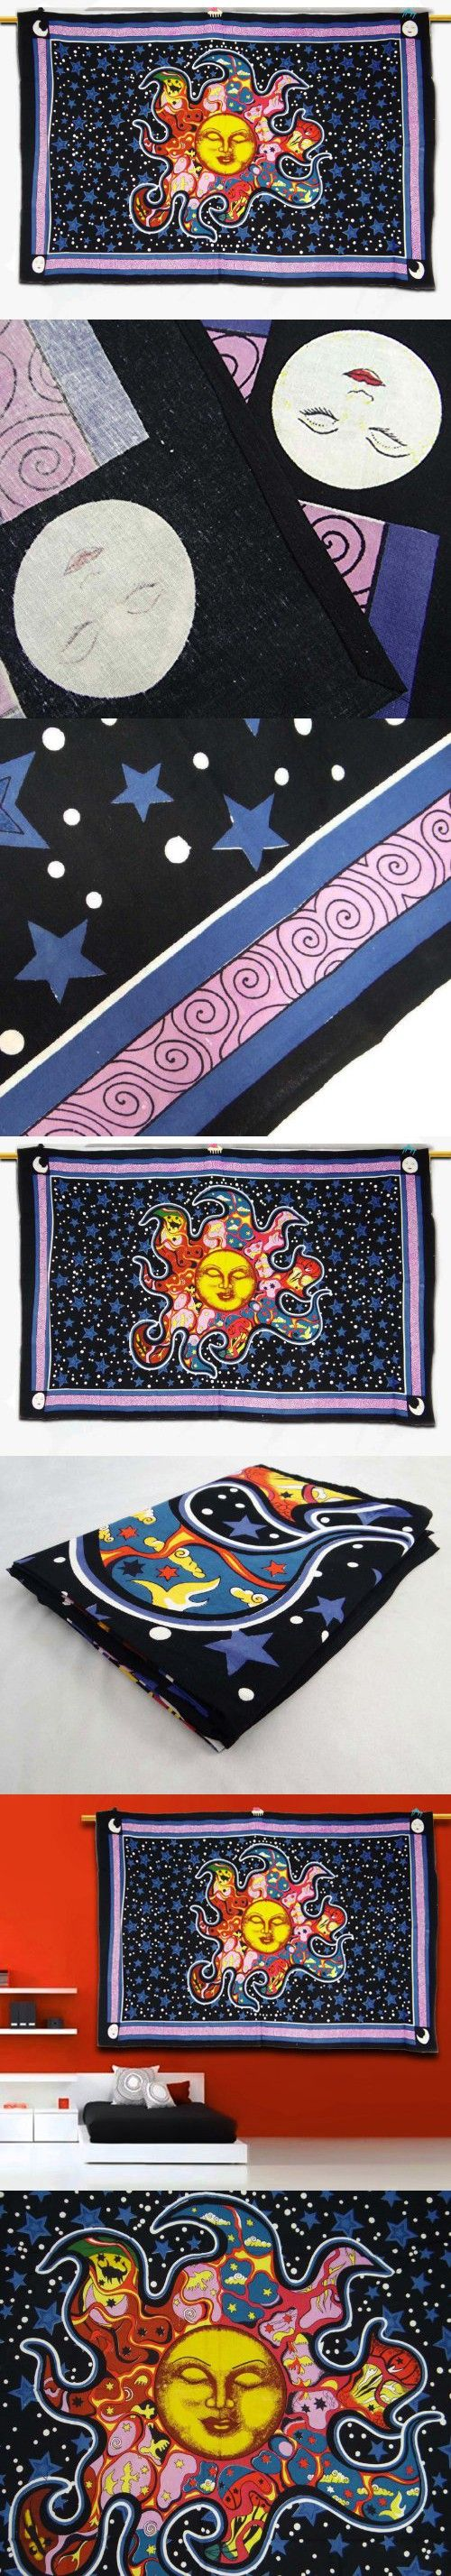 "Hippie Cotton Tapestry Sun Printed Wall Home Décor Art Large Bed Cover Gift Art 83"" X 54"""